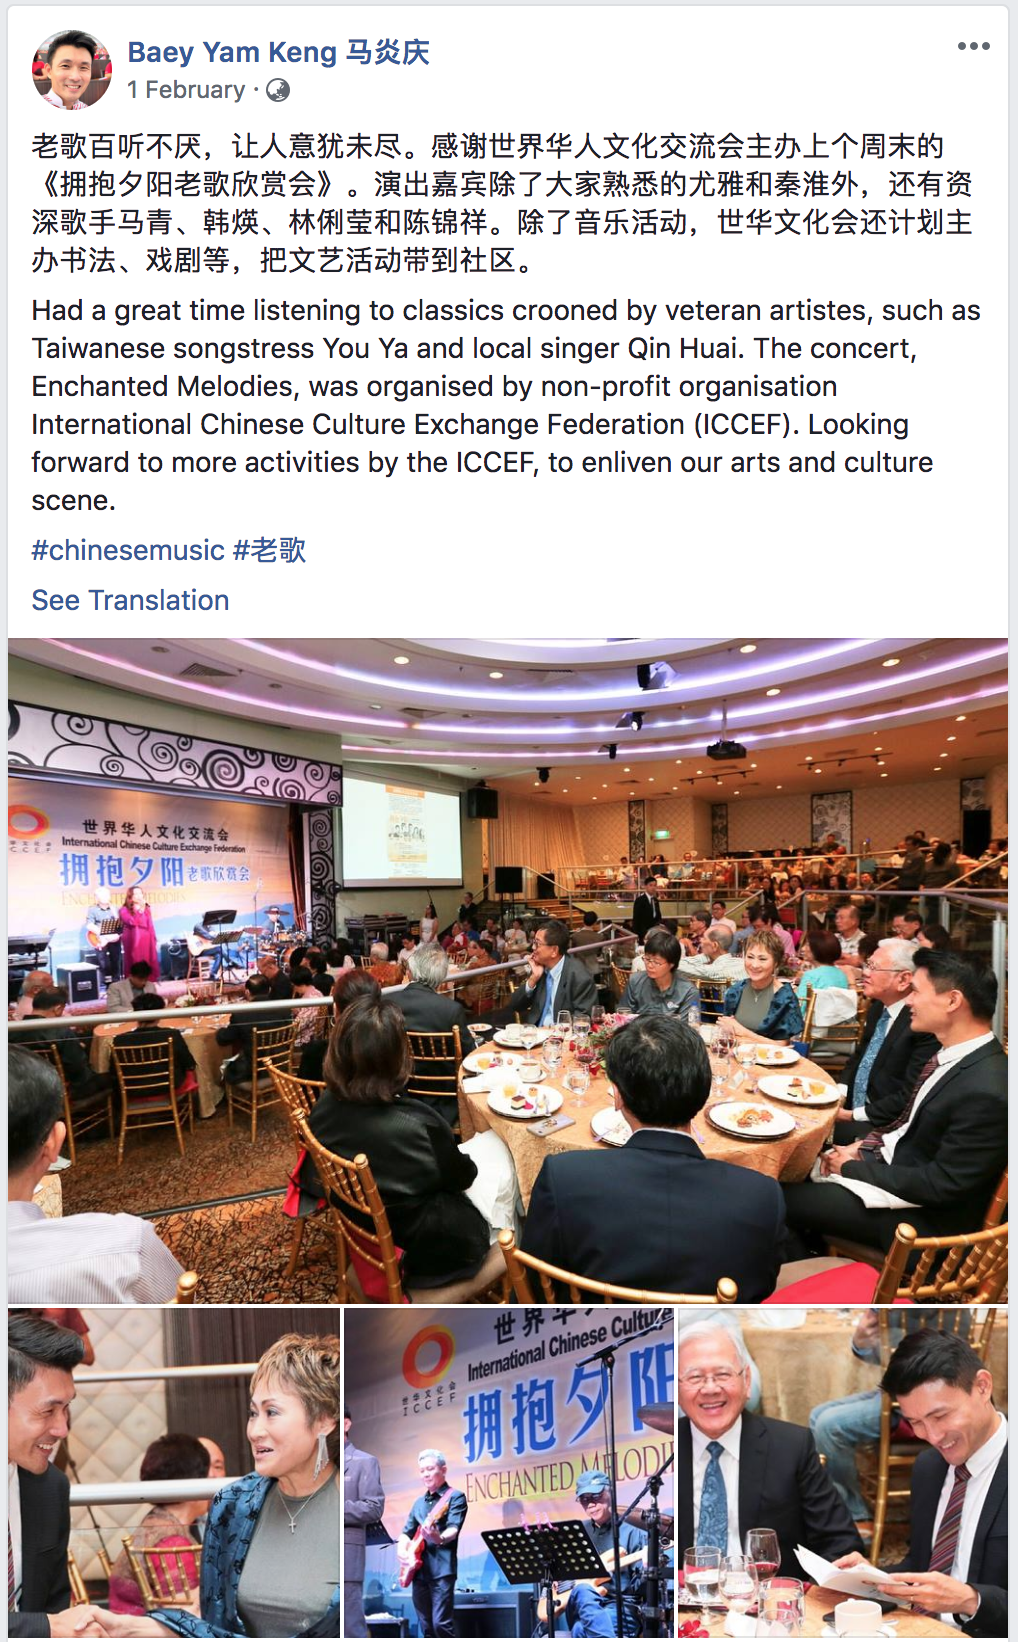 Editorial Content for Singapore's Parliamentary Secretary, Baey Yam Keng.